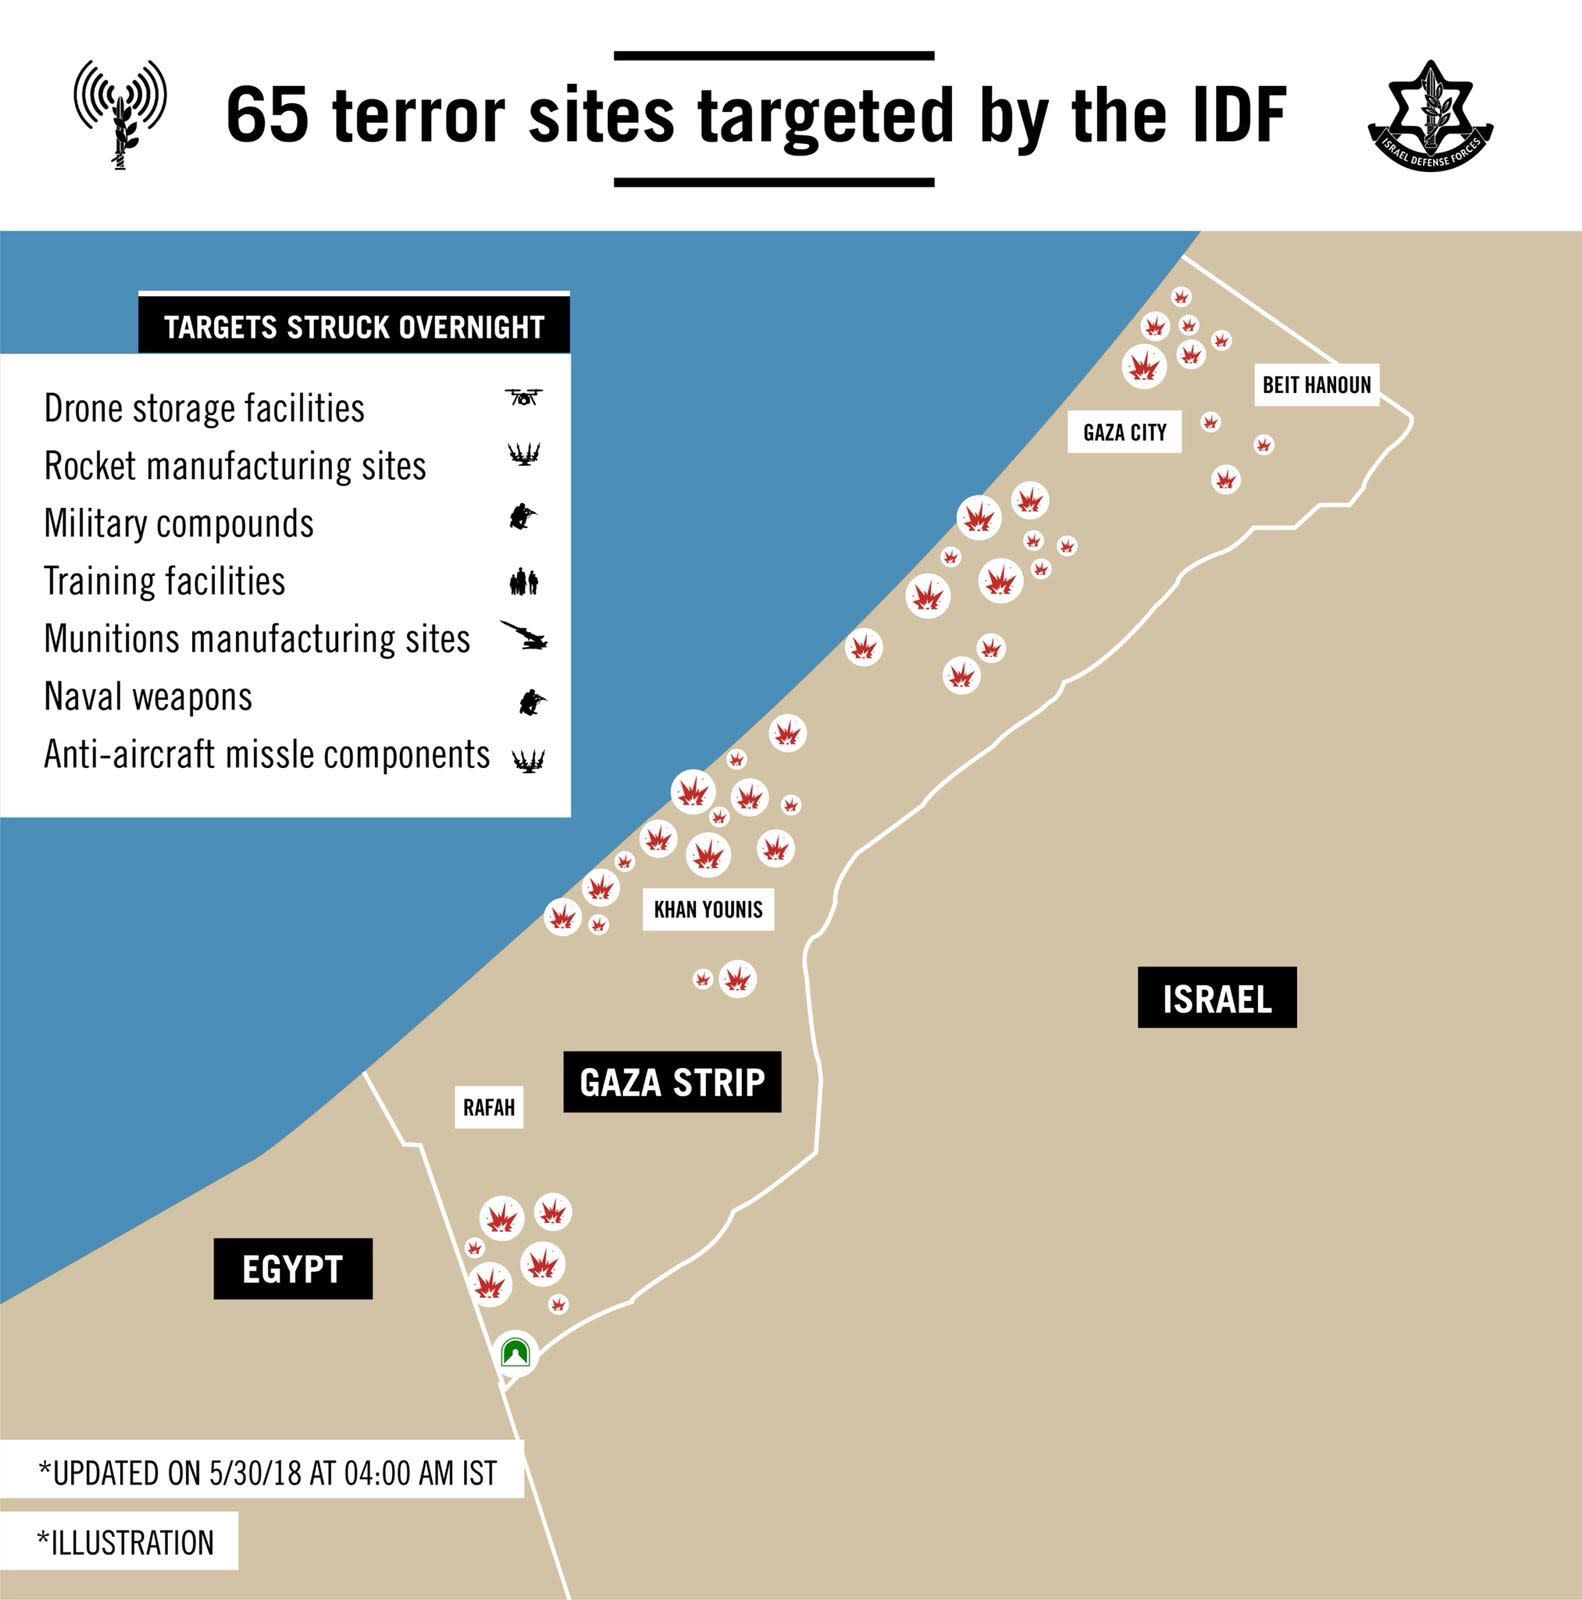 Hamas targets struck by the IDF overnight May 29, 2018 (IDF SPOKESPERSON'S UNIT)